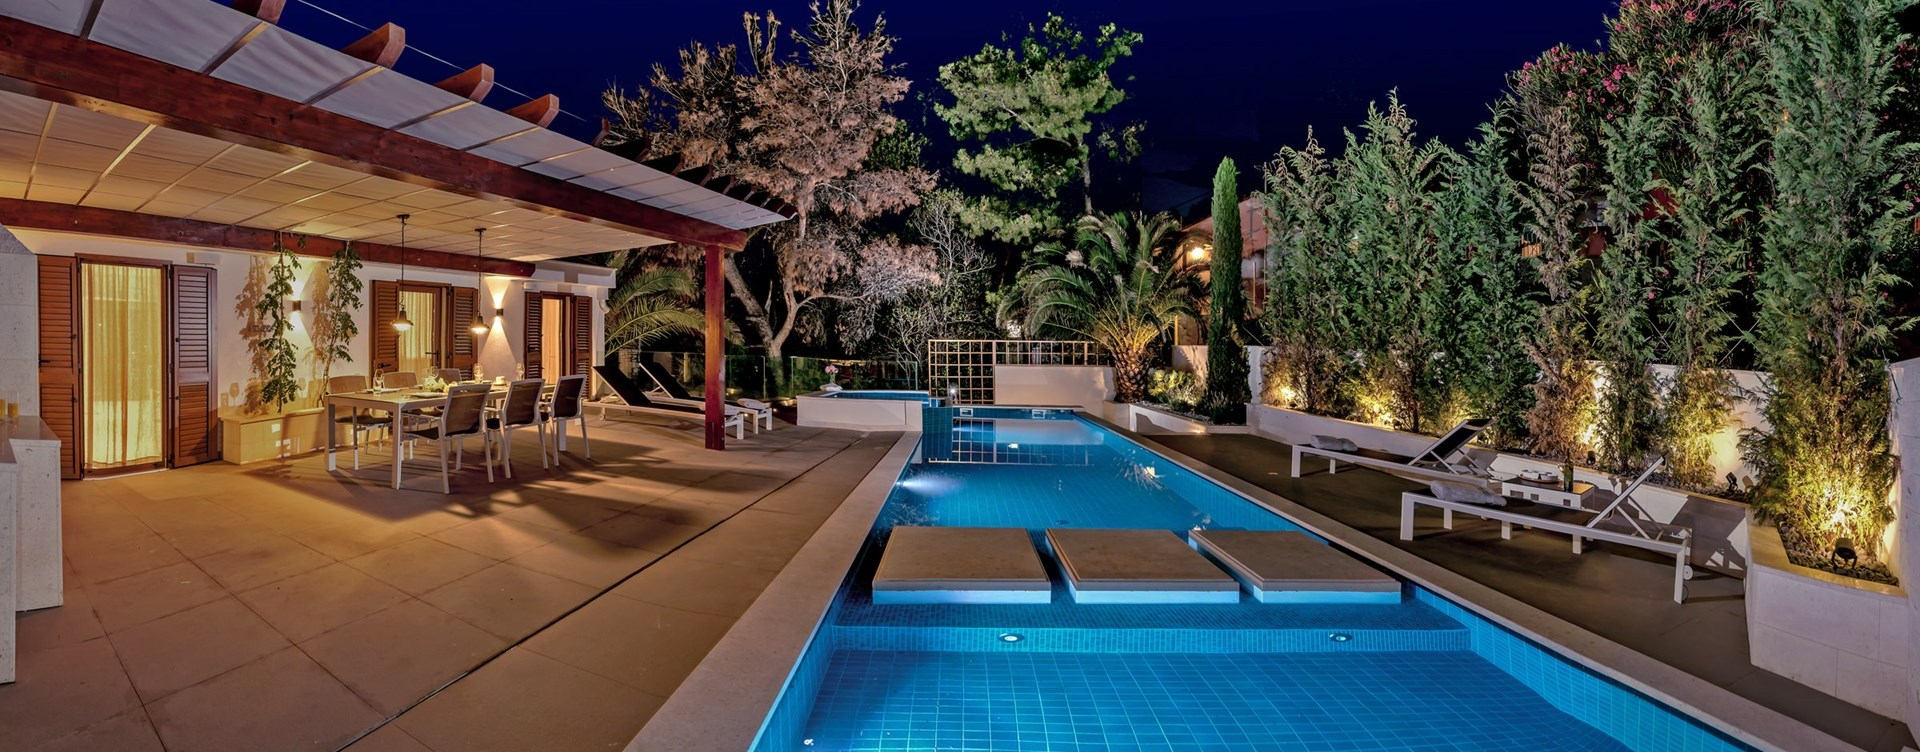 villa-tourmaline-brac-croatia-night